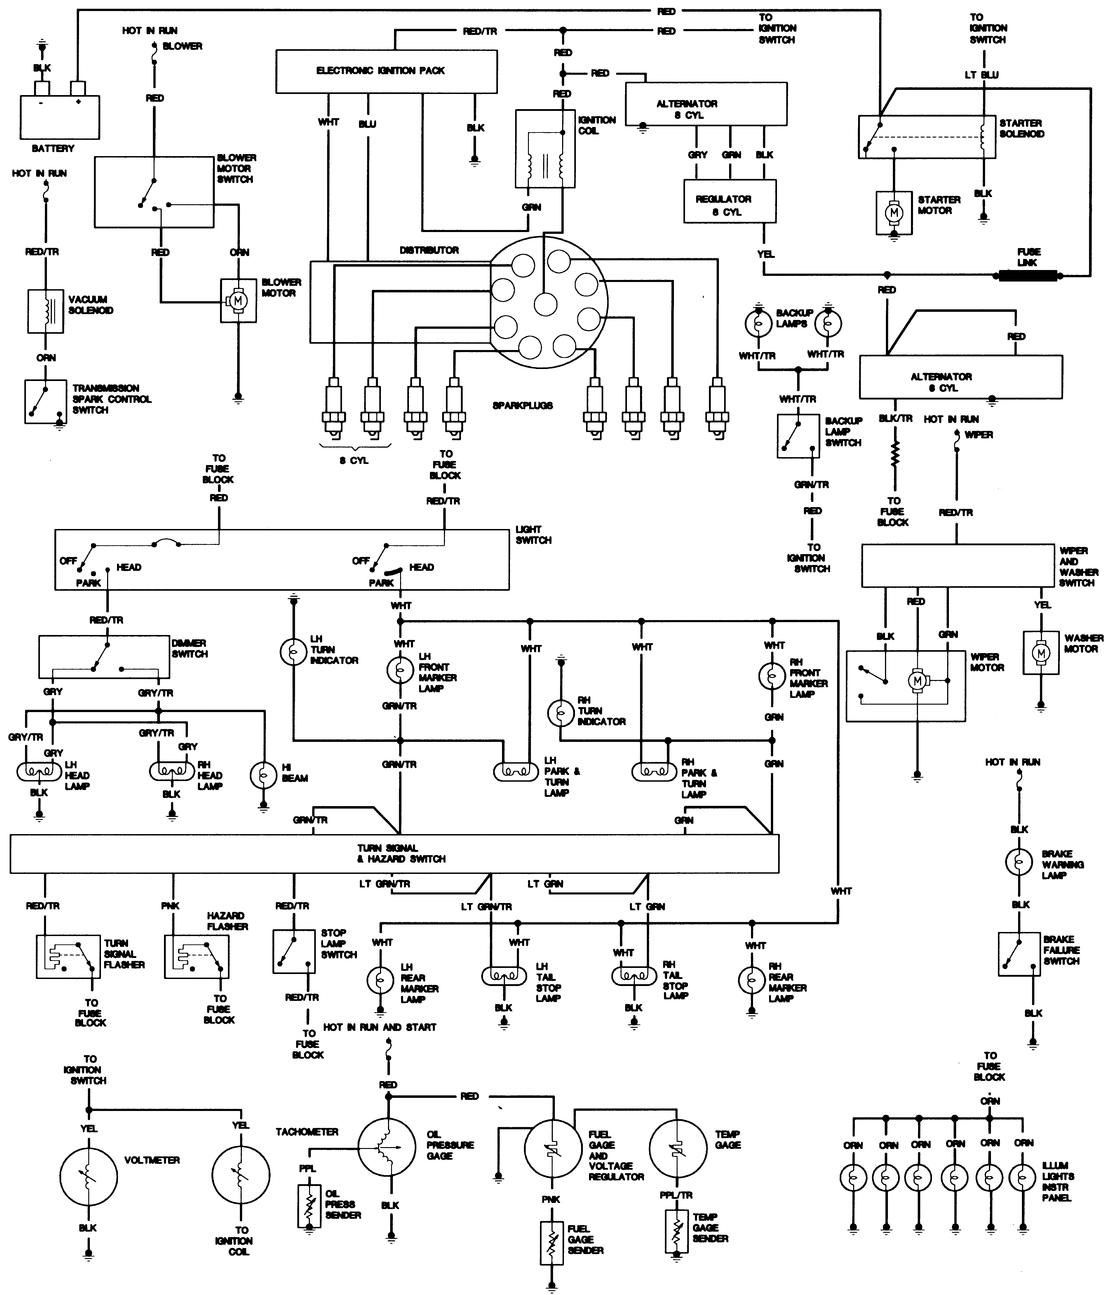 1980 cj5 wiring diagram furthermore jeep cj7 tachometer ... Homemade Jeep Cj Wiring Harness on